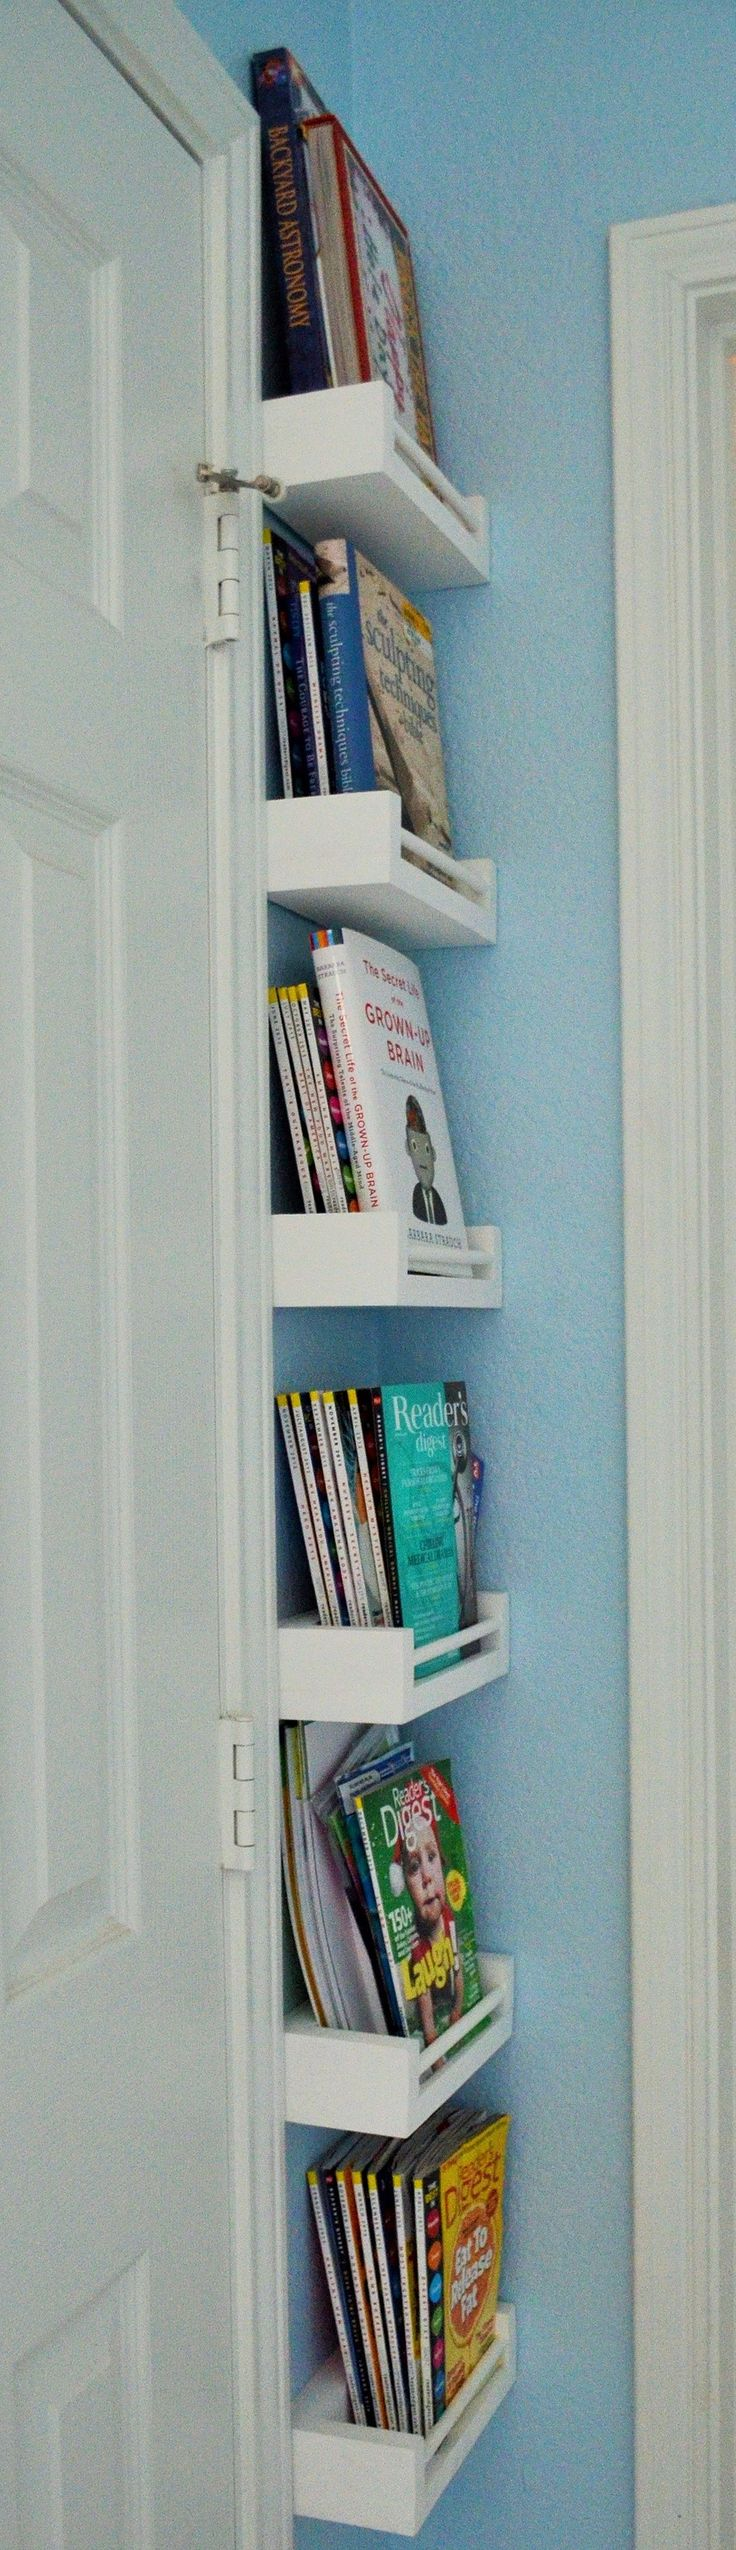 Best 25+ Kid book storage ideas on Pinterest | Ikea ...